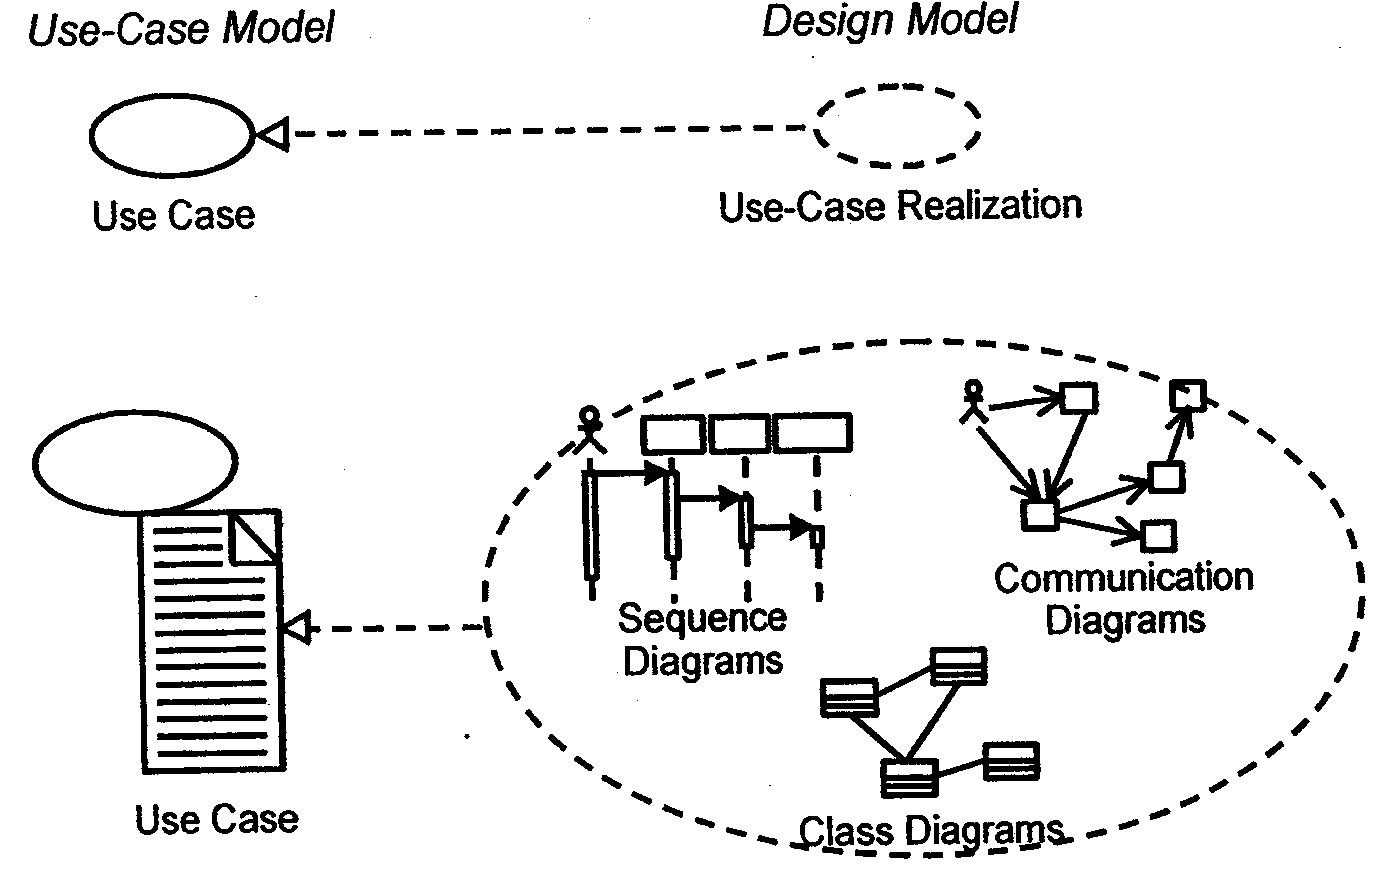 saaf  jpgthe value of use case realizations